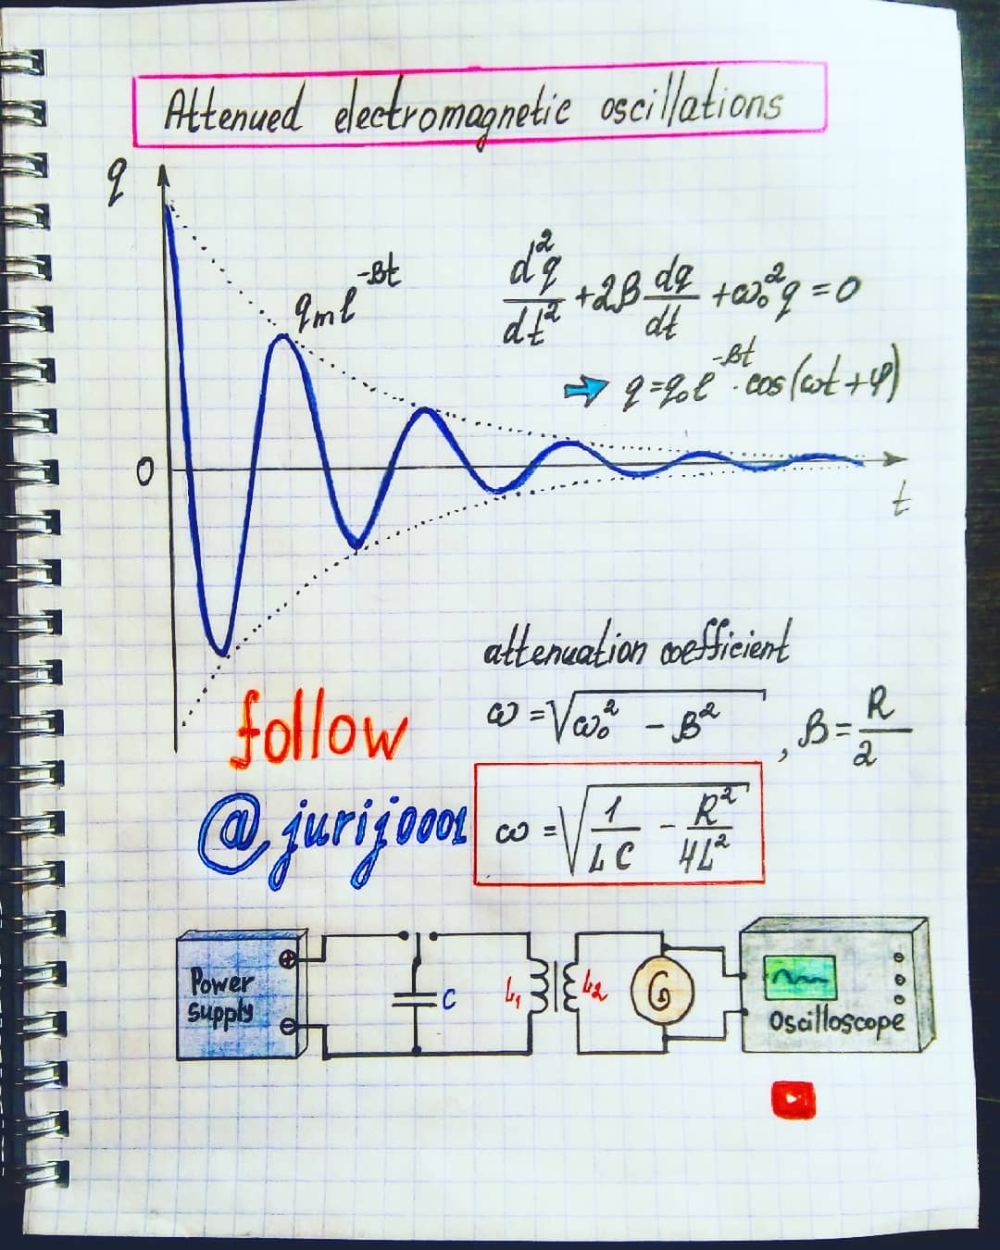 Attenued Electromagnetic Oscillations Illustration By Physics Teacher Yuri Kovalenok Jurij0001 Sciences Physiques Electrotechnique Apprentissage